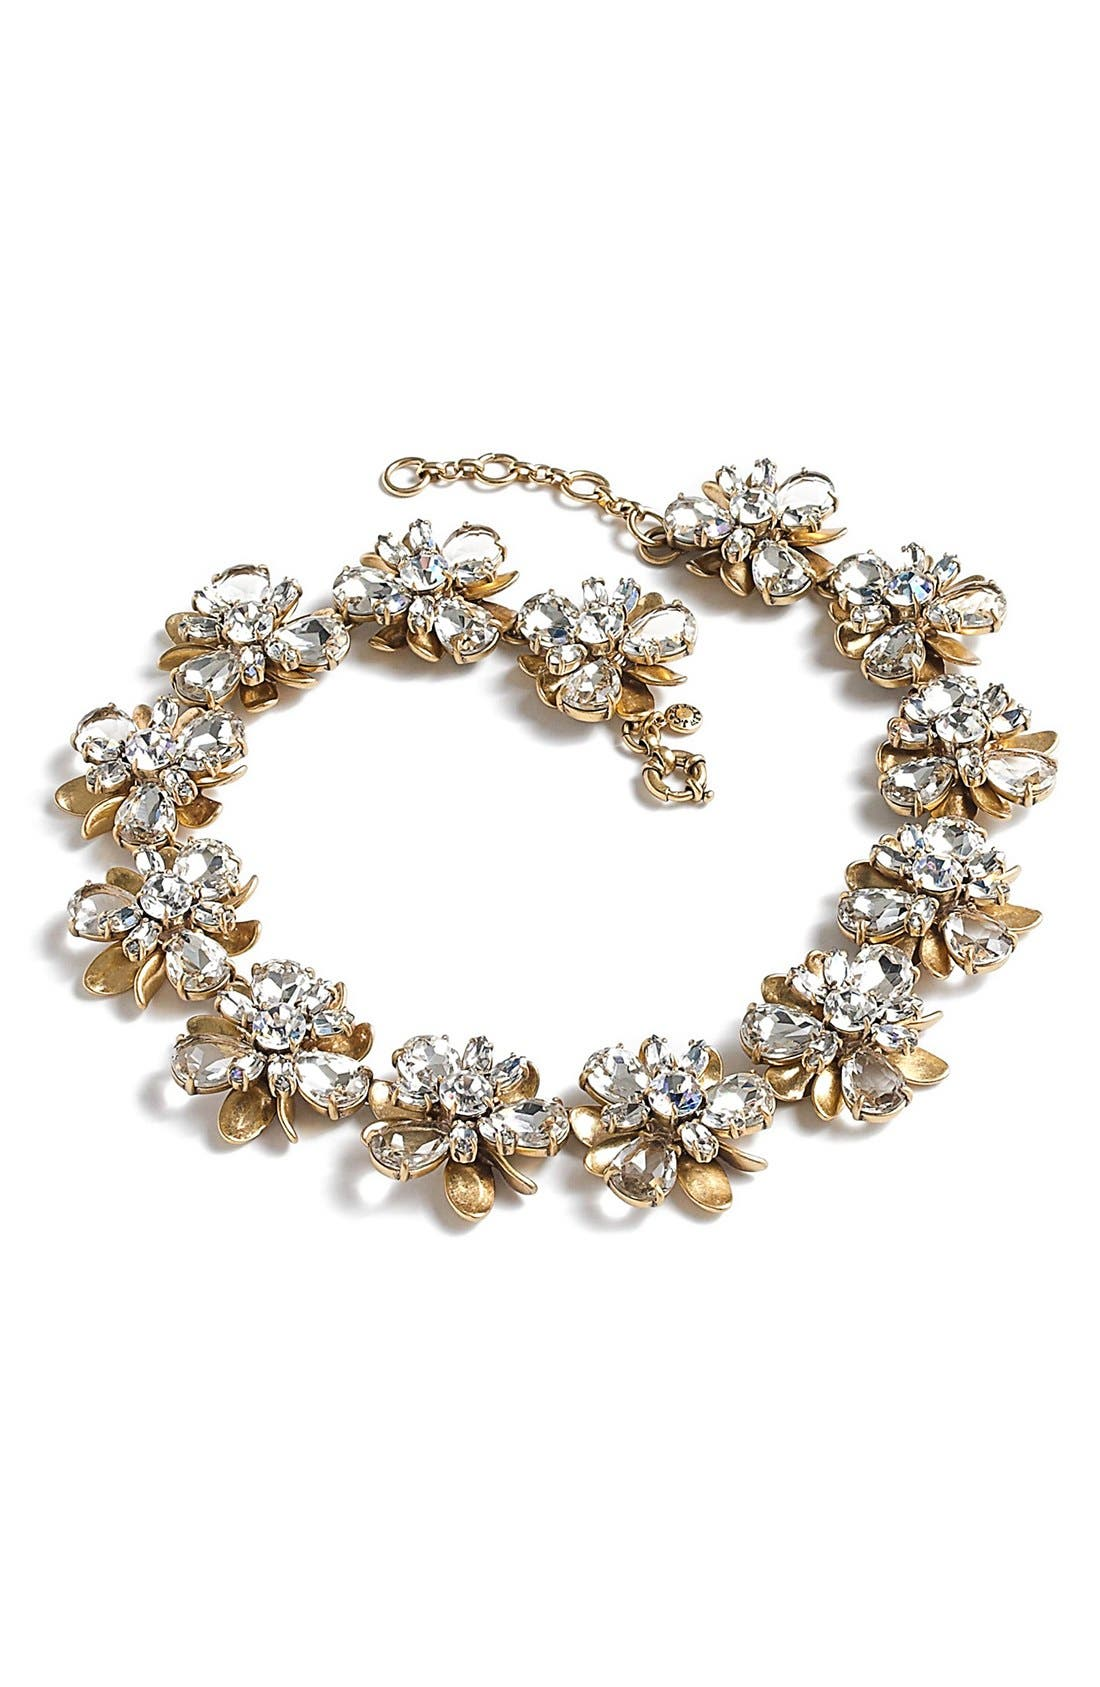 Main Image - J.Crew 'Crystal Blossom' Necklace